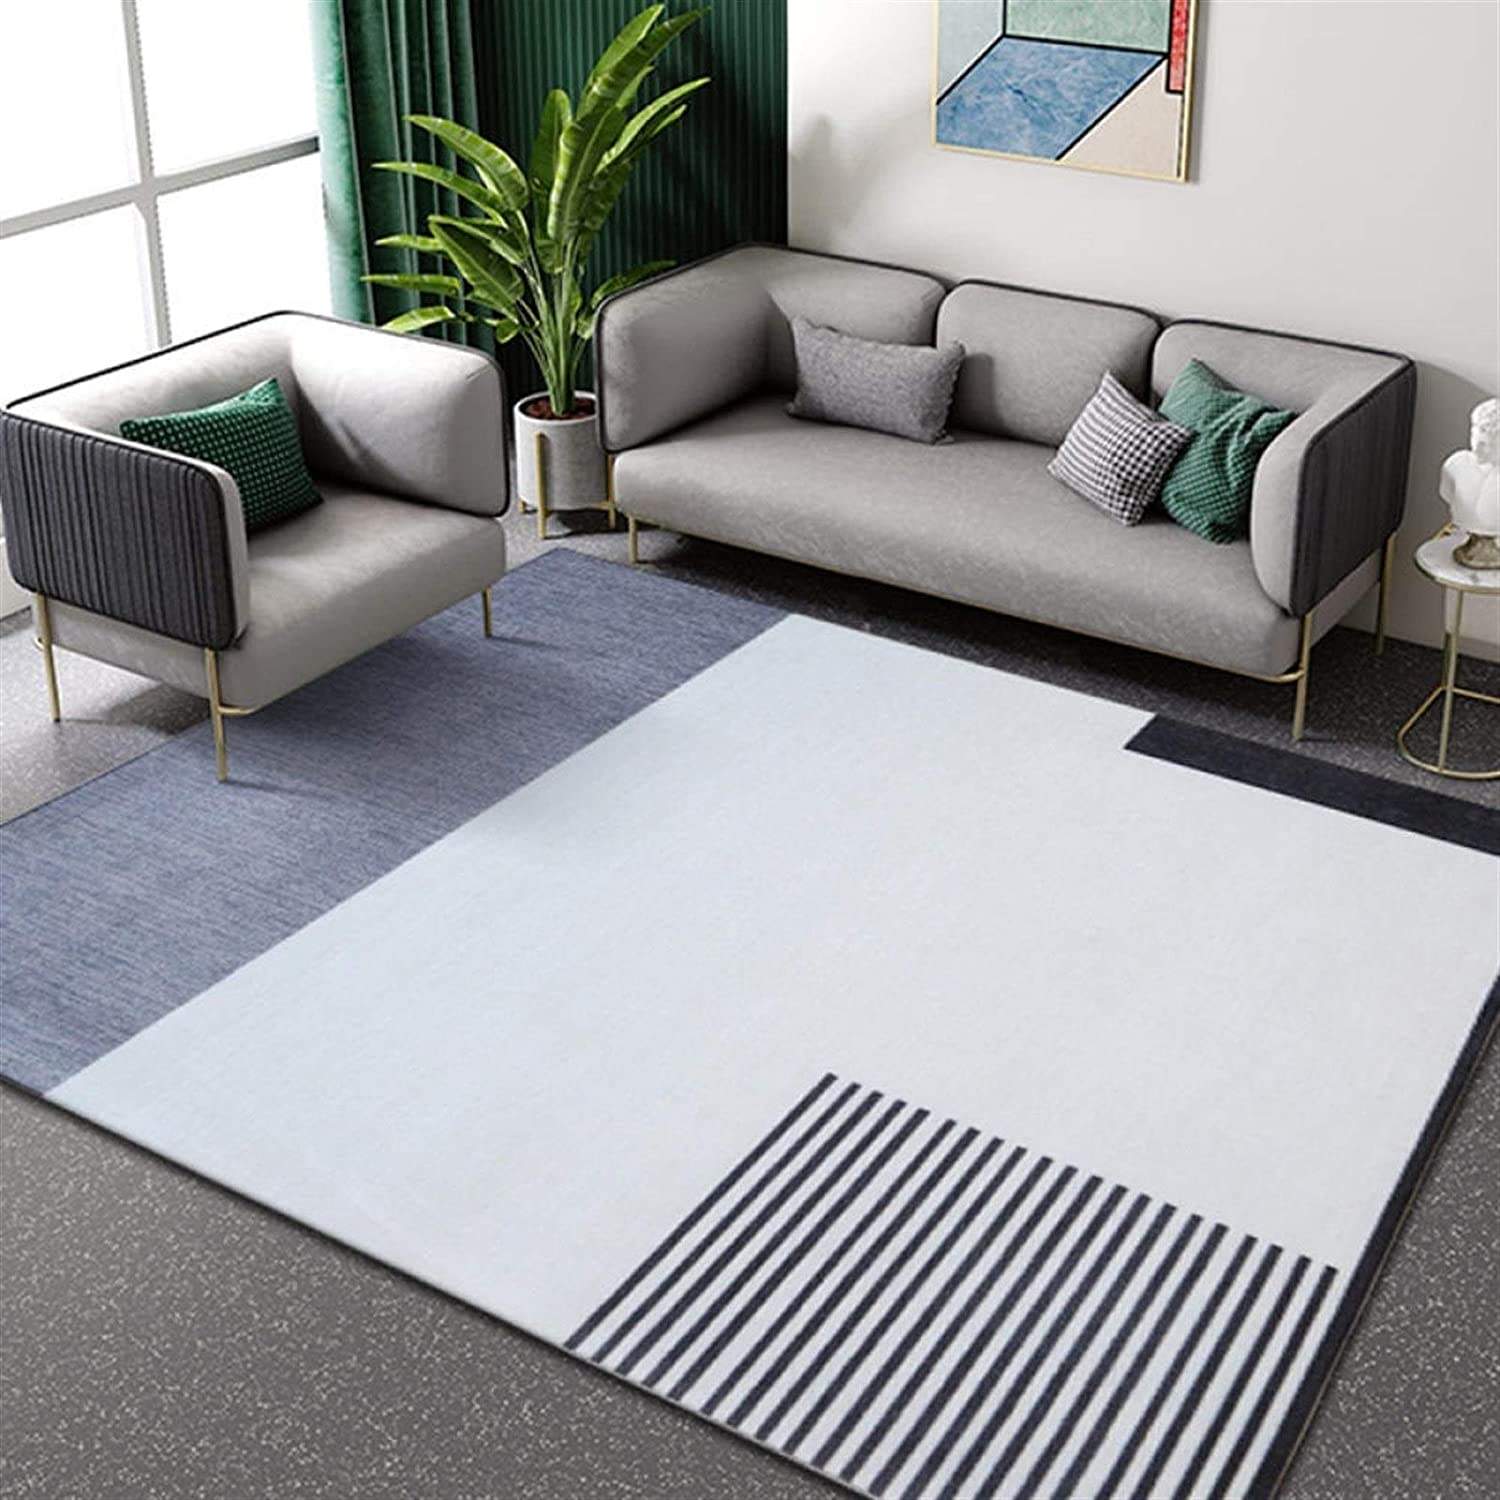 WJCRYPD Super Sale Special SALE held Carpet Living Room Sofa Coffee Mat Floor Table Be